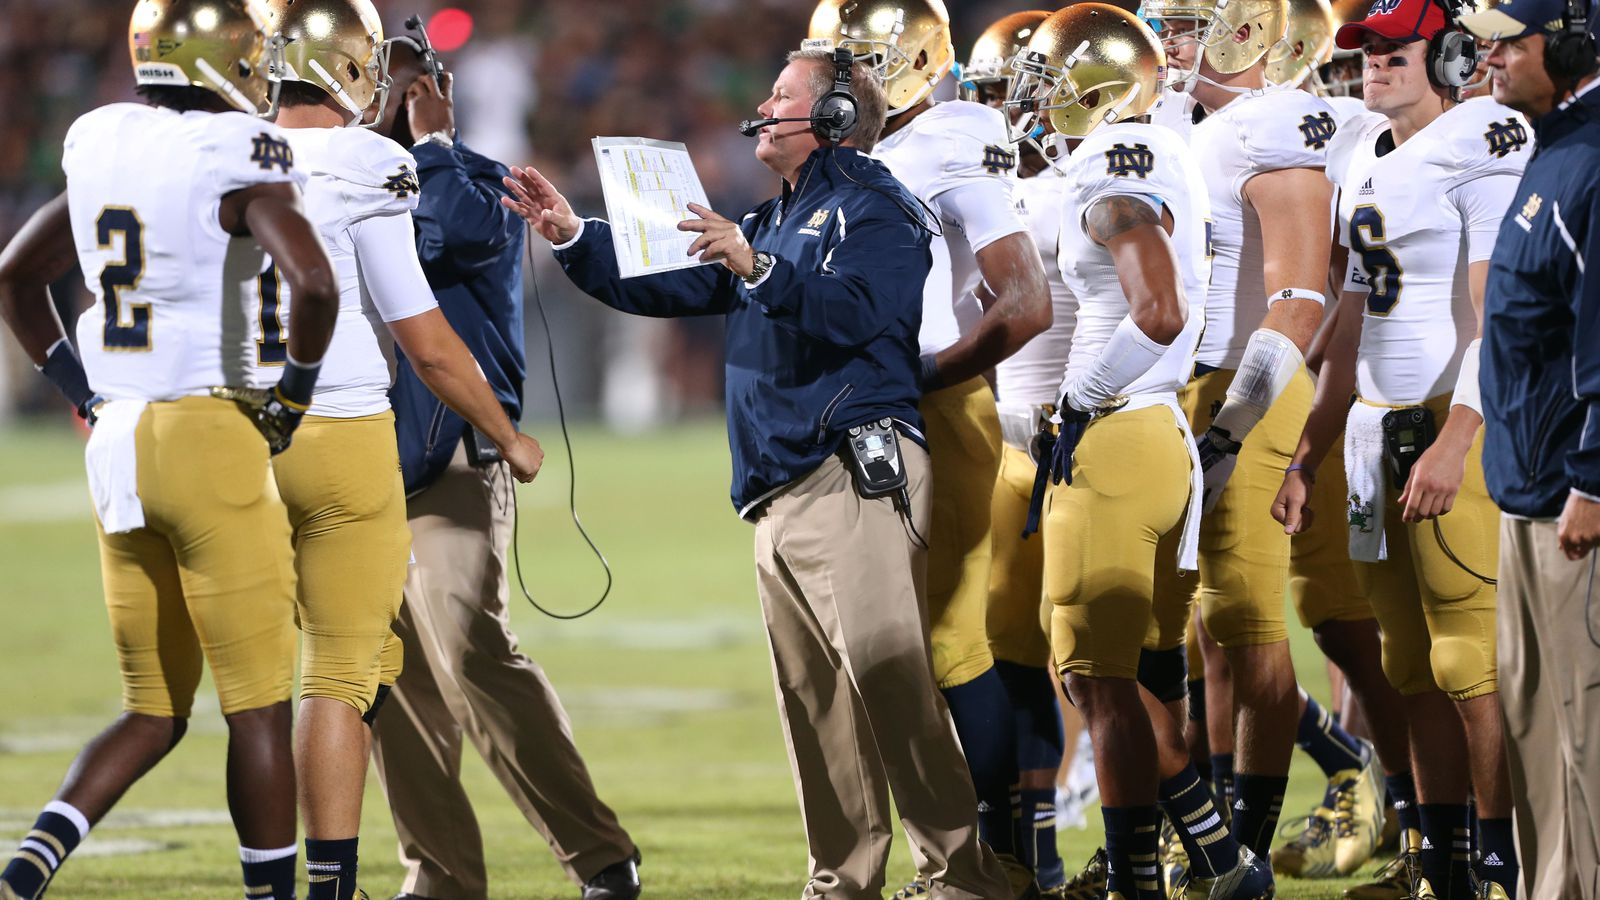 Need Notre Dame Fighting Irish Football Tickets TicketCity offers 100 moneyback guarantee uptodate prices amp event information Over 1 million customers served